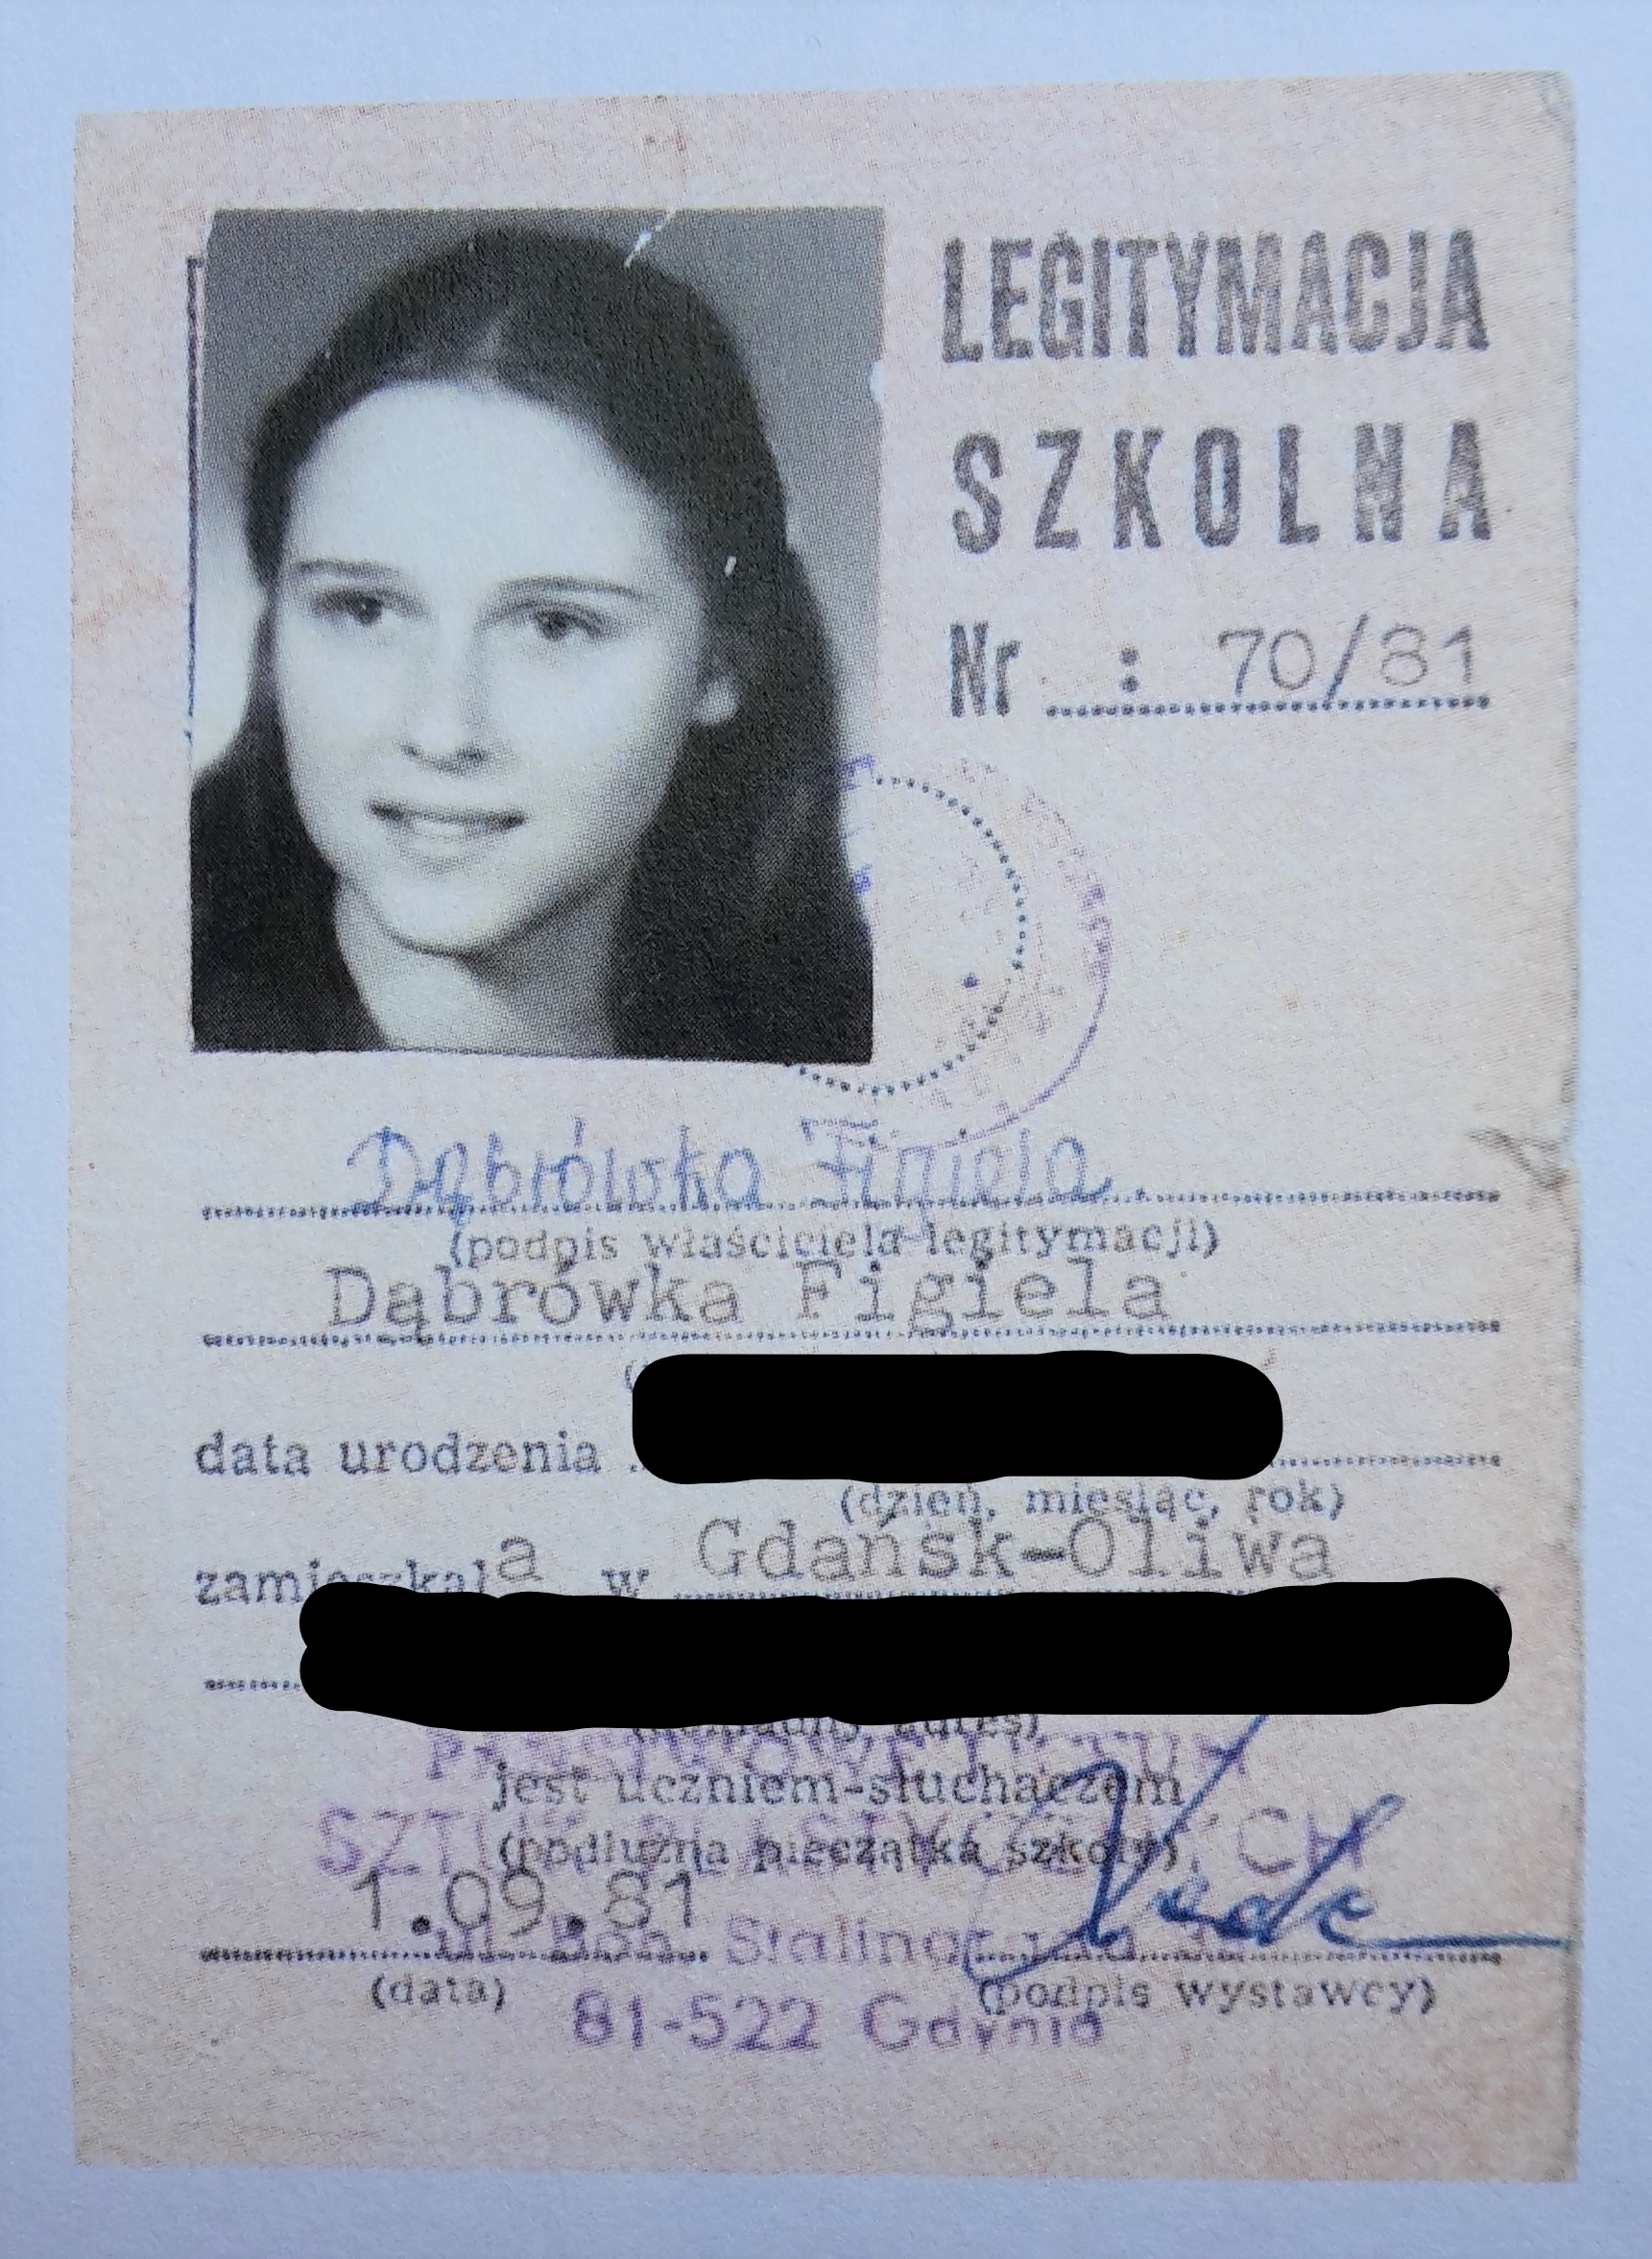 Dąbrówka Figiela-Miadziółko's student ID from the time she created the underground postage stamps during the Gdansk Strikes of August 1980.